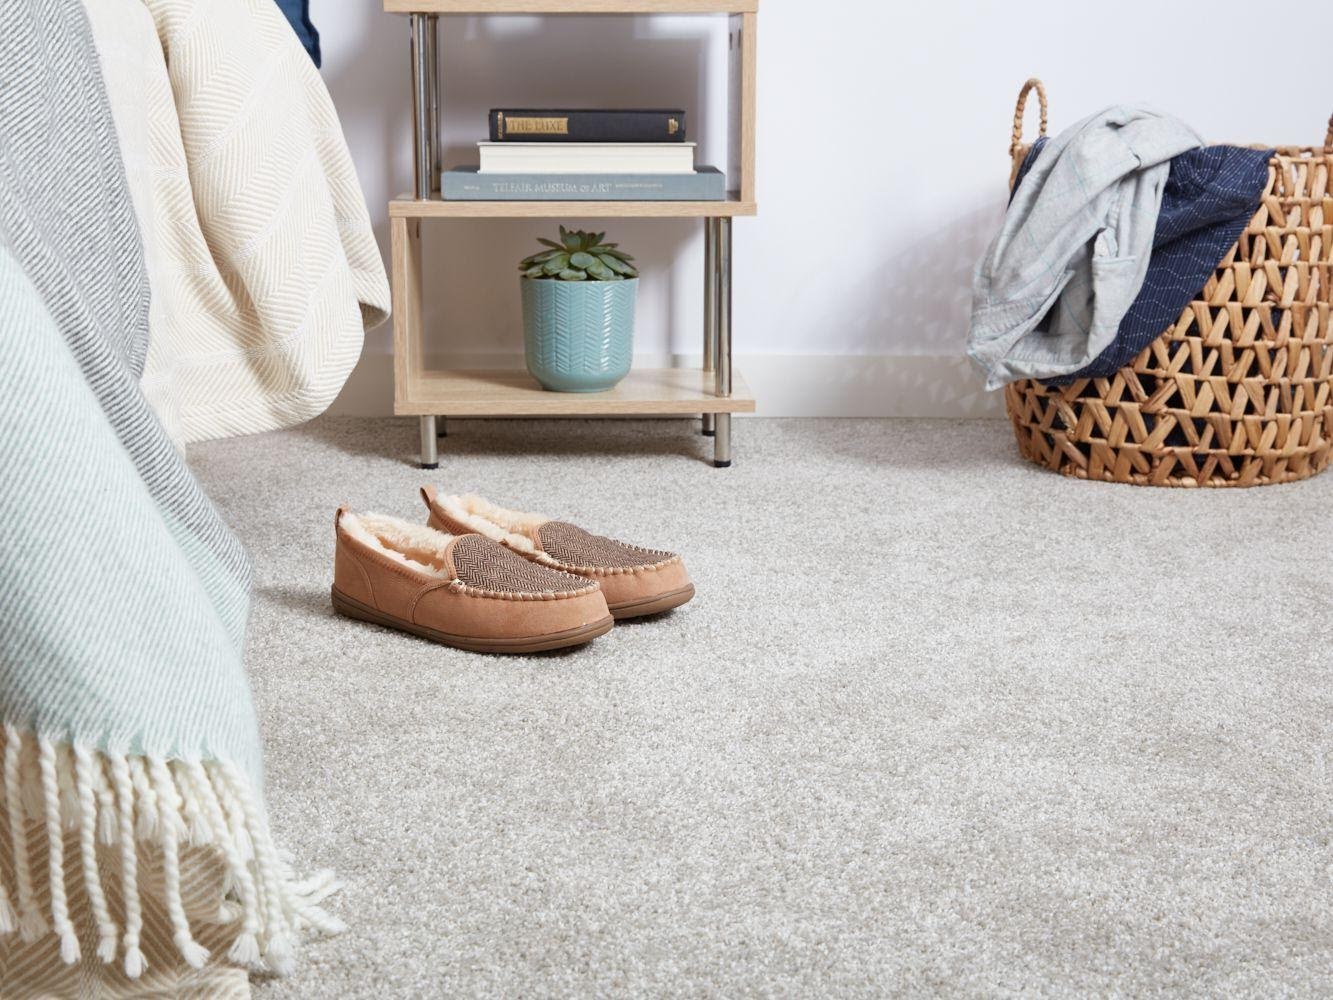 10. Type of Floor Covering by simphome.com